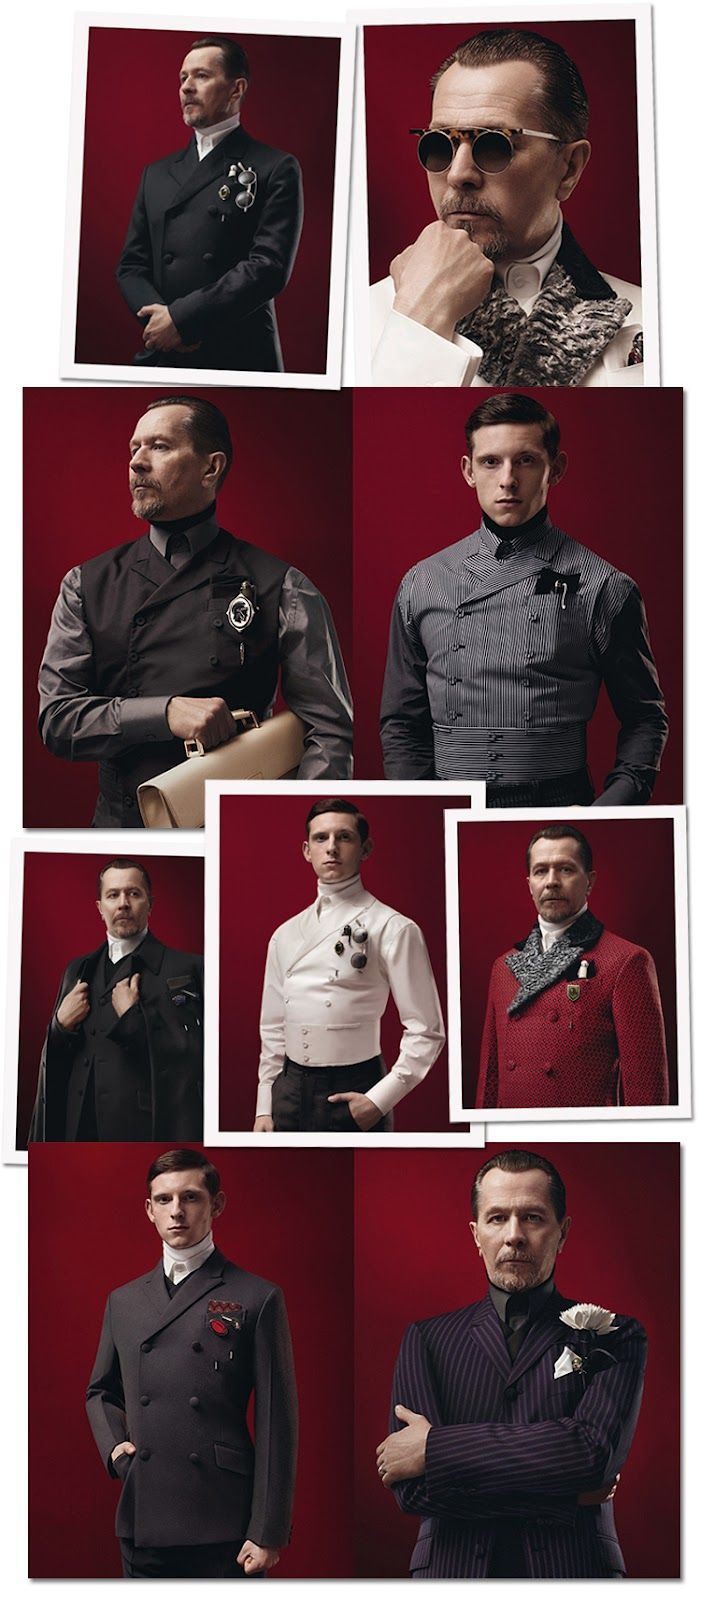 Prada's Fall/Winter 2012 Menswear Collection: For when it is essential you look like an Austrian Archduke